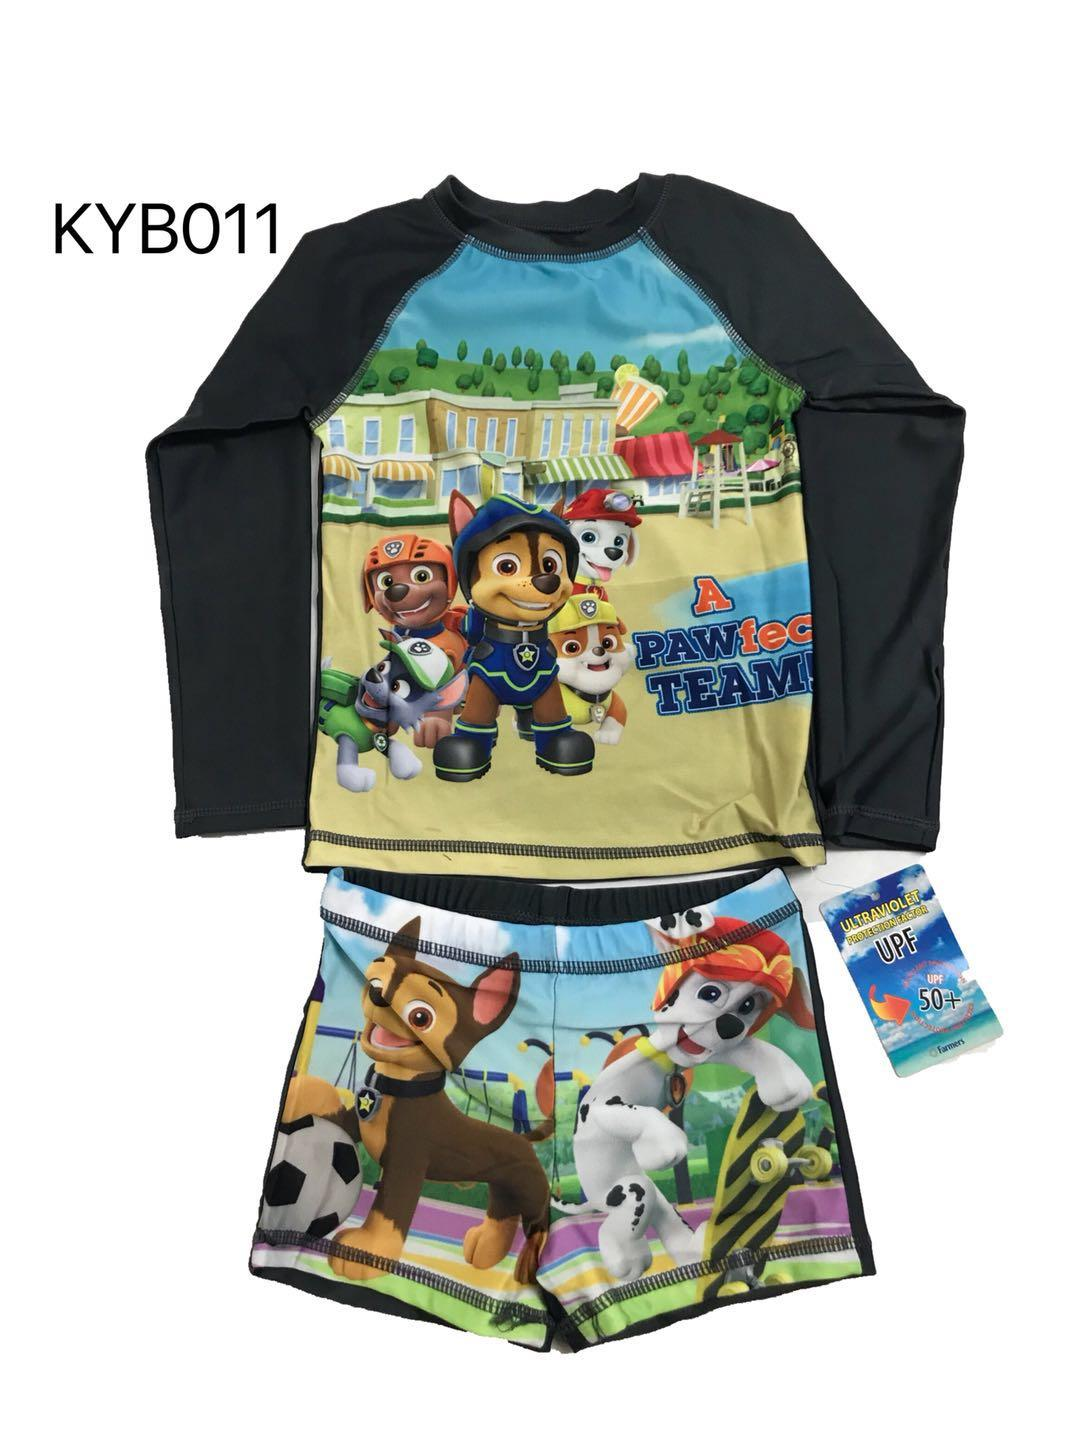 Kyb.011 Rashguard For Boy By Joy Wears.